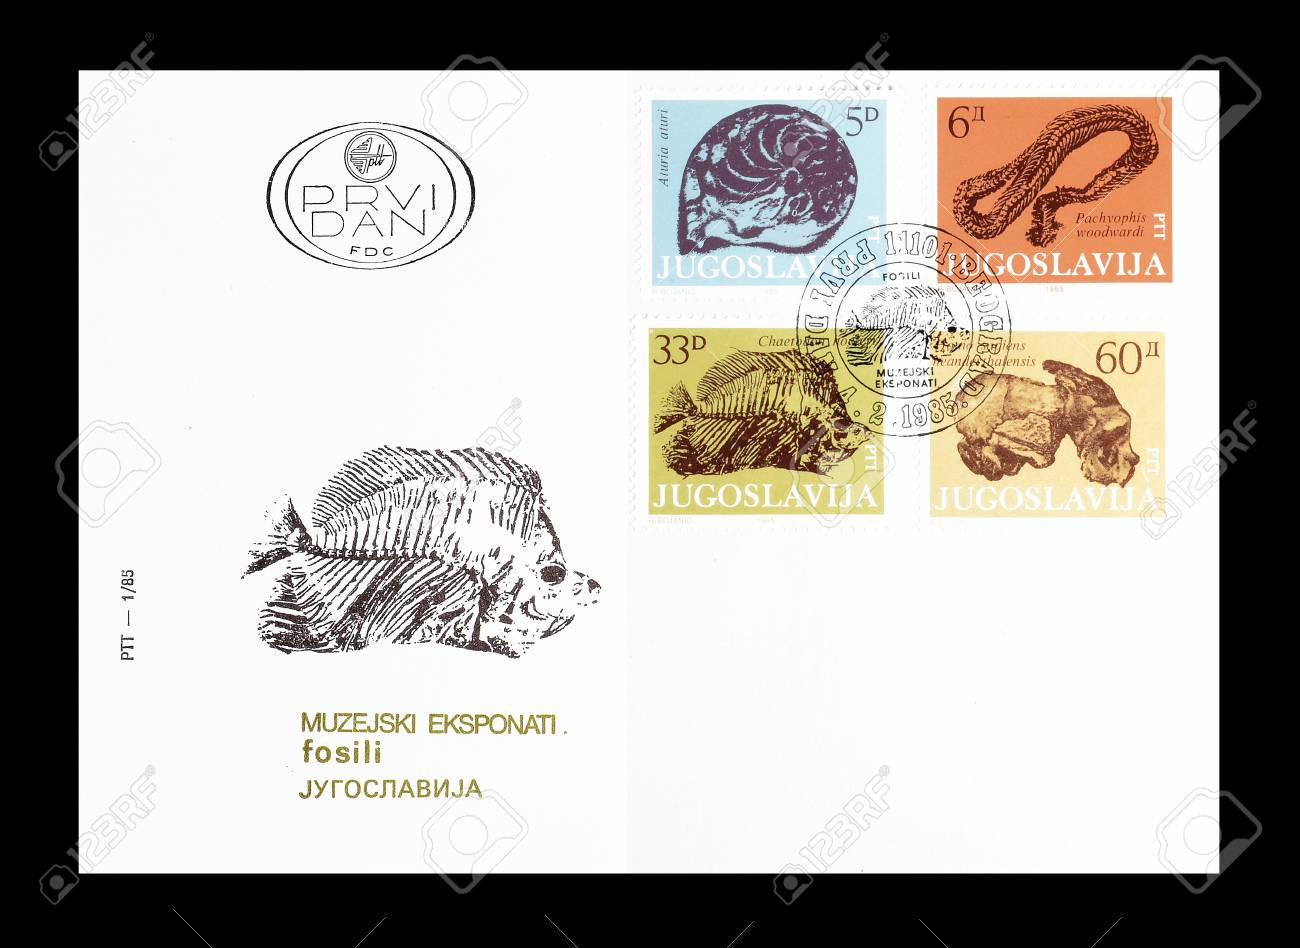 First Day Cover letter with cancelled postage stamps printed..